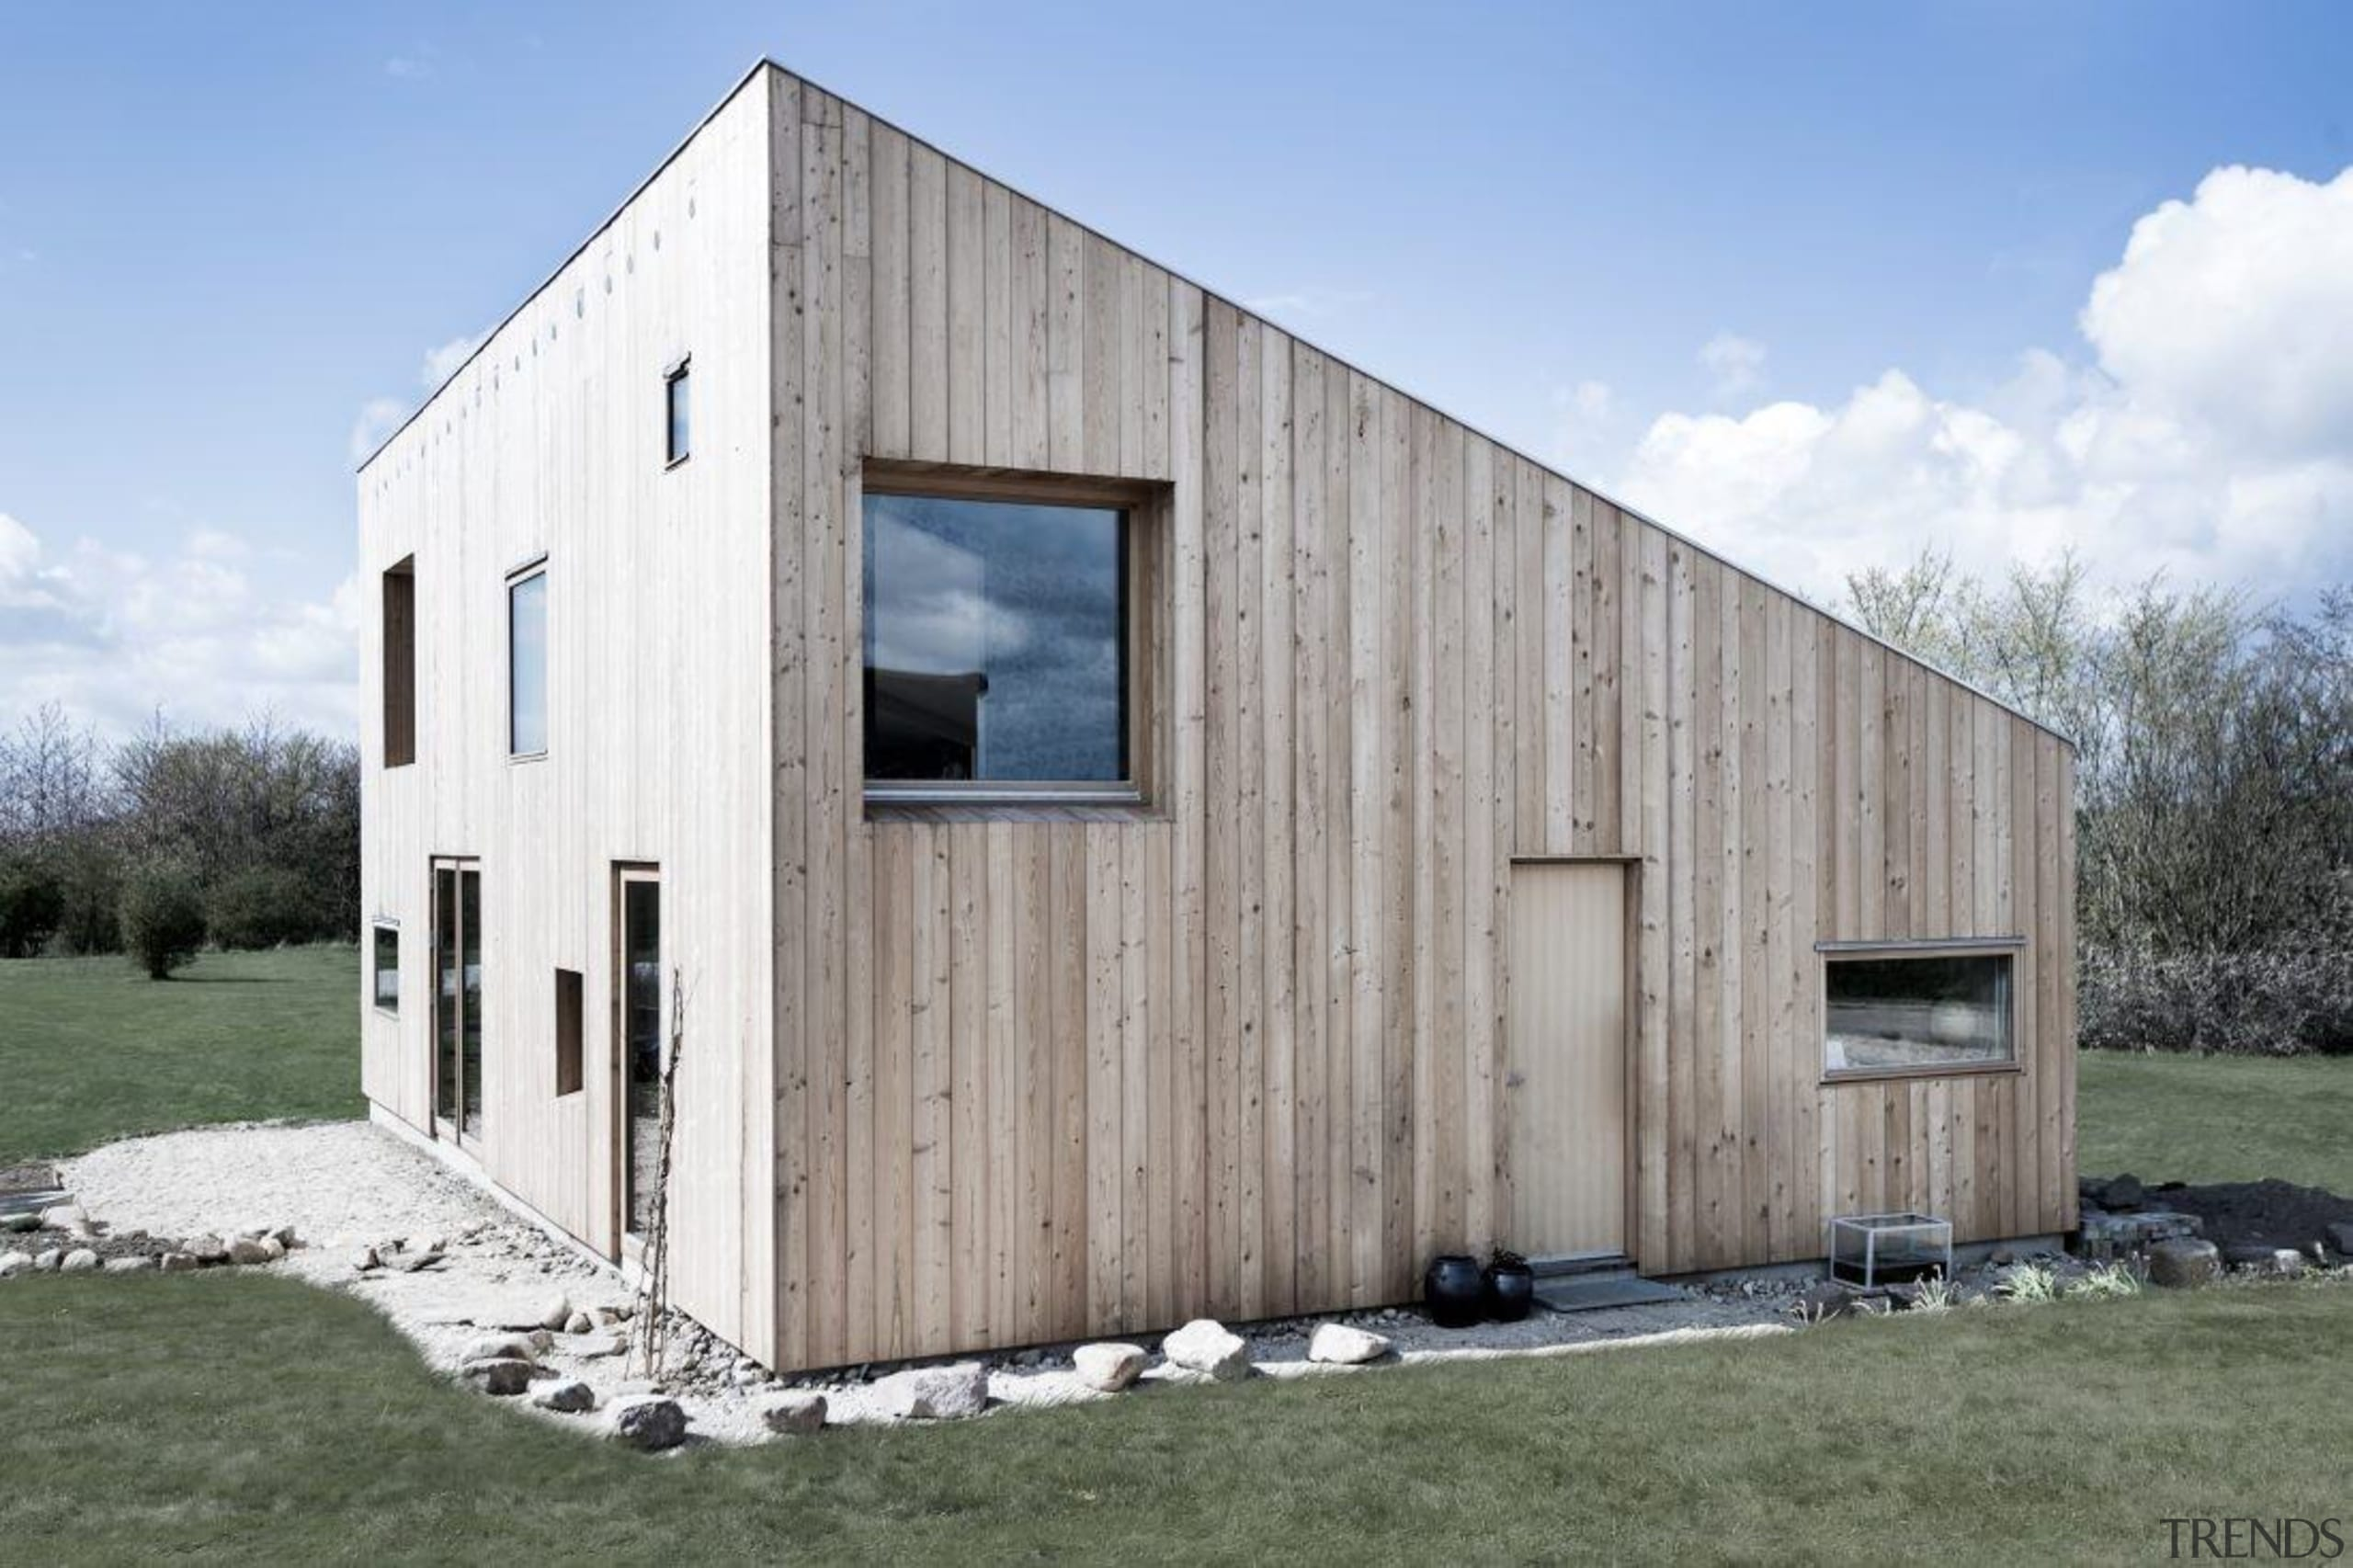 Architect: Sigured Larsen architecture, barn, facade, home, house, real estate, shack, shed, siding, gray